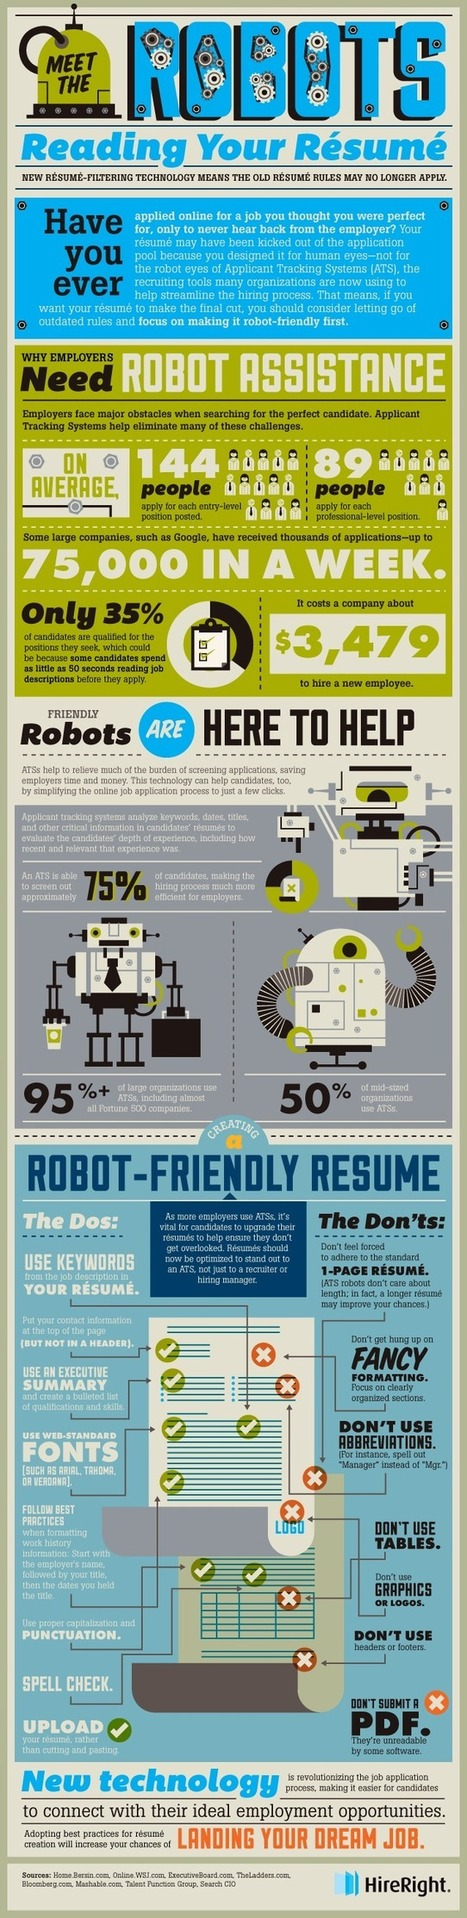 resume Resume Heat Map resume in e learning and online teaching scoop it how to create a robot friendly land your dream job